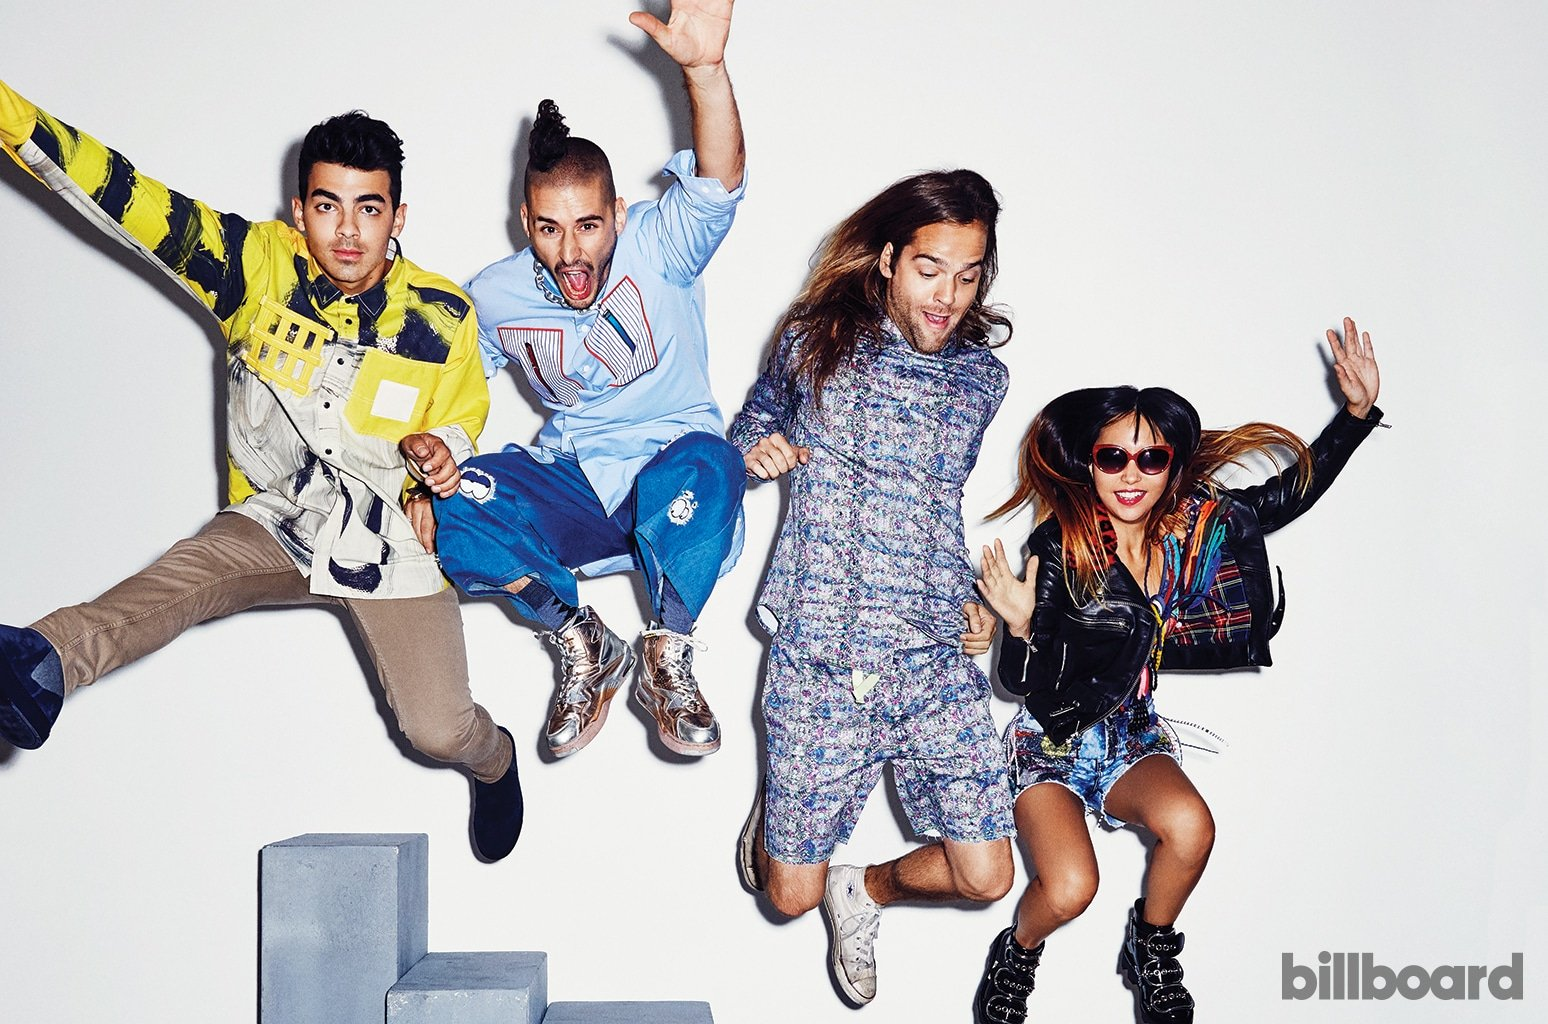 dnce-jump-bb-bb14-billboard-650-1548